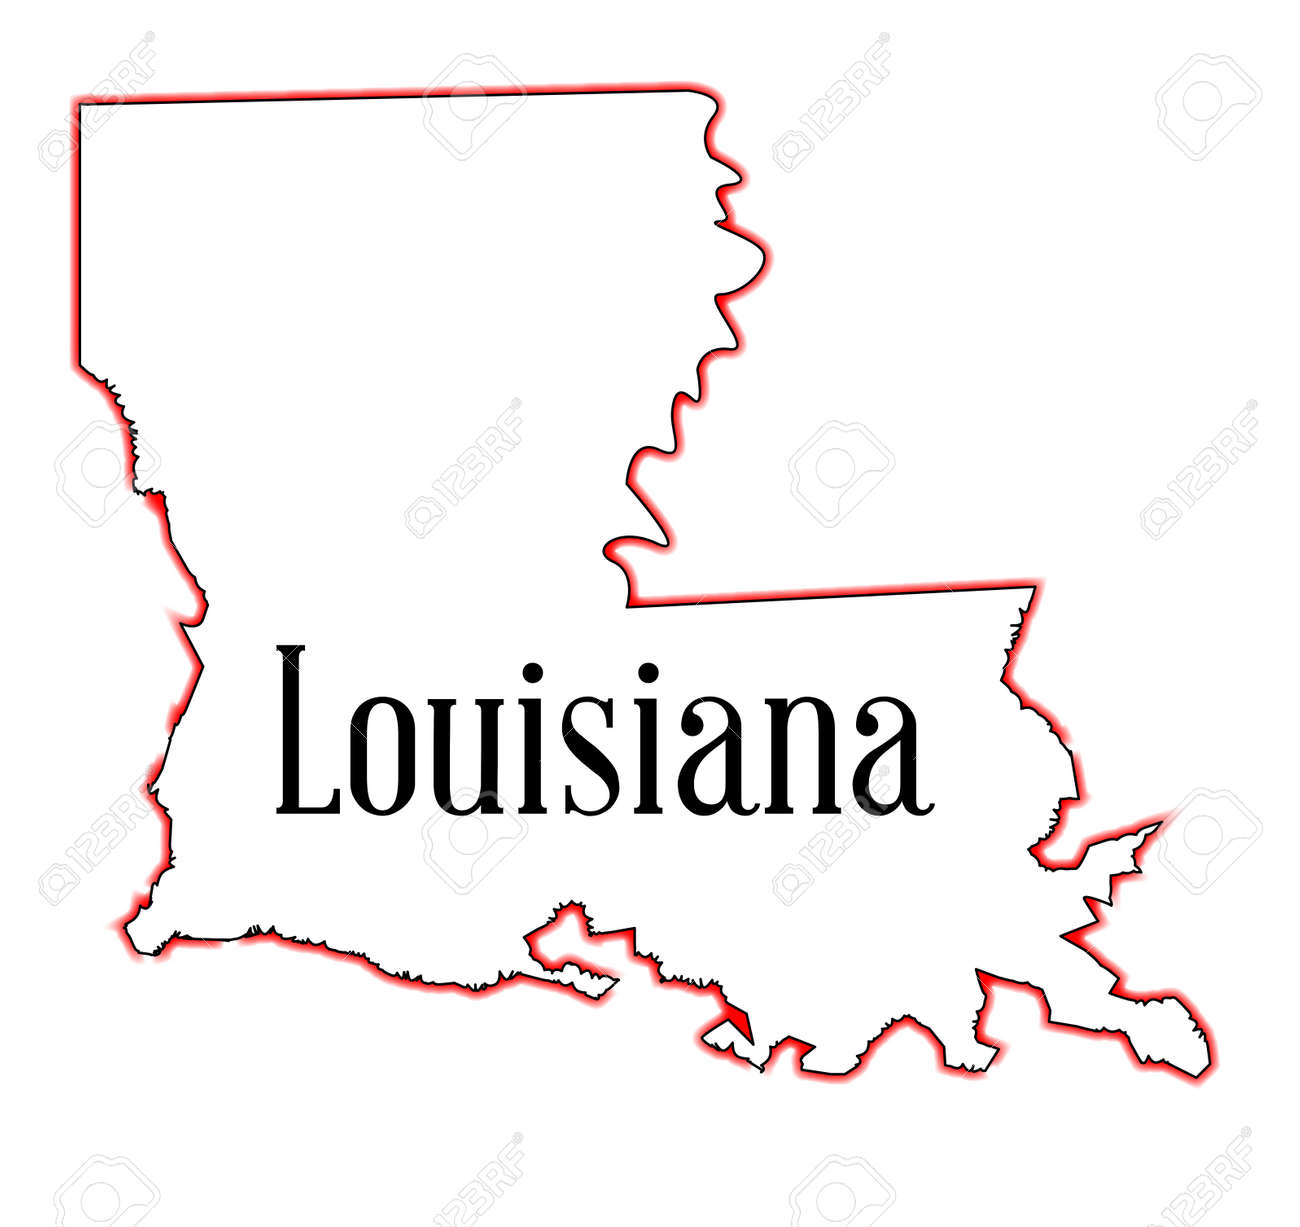 State Map Outline Of Louisiana Over A White Background Royalty - Louisana state map